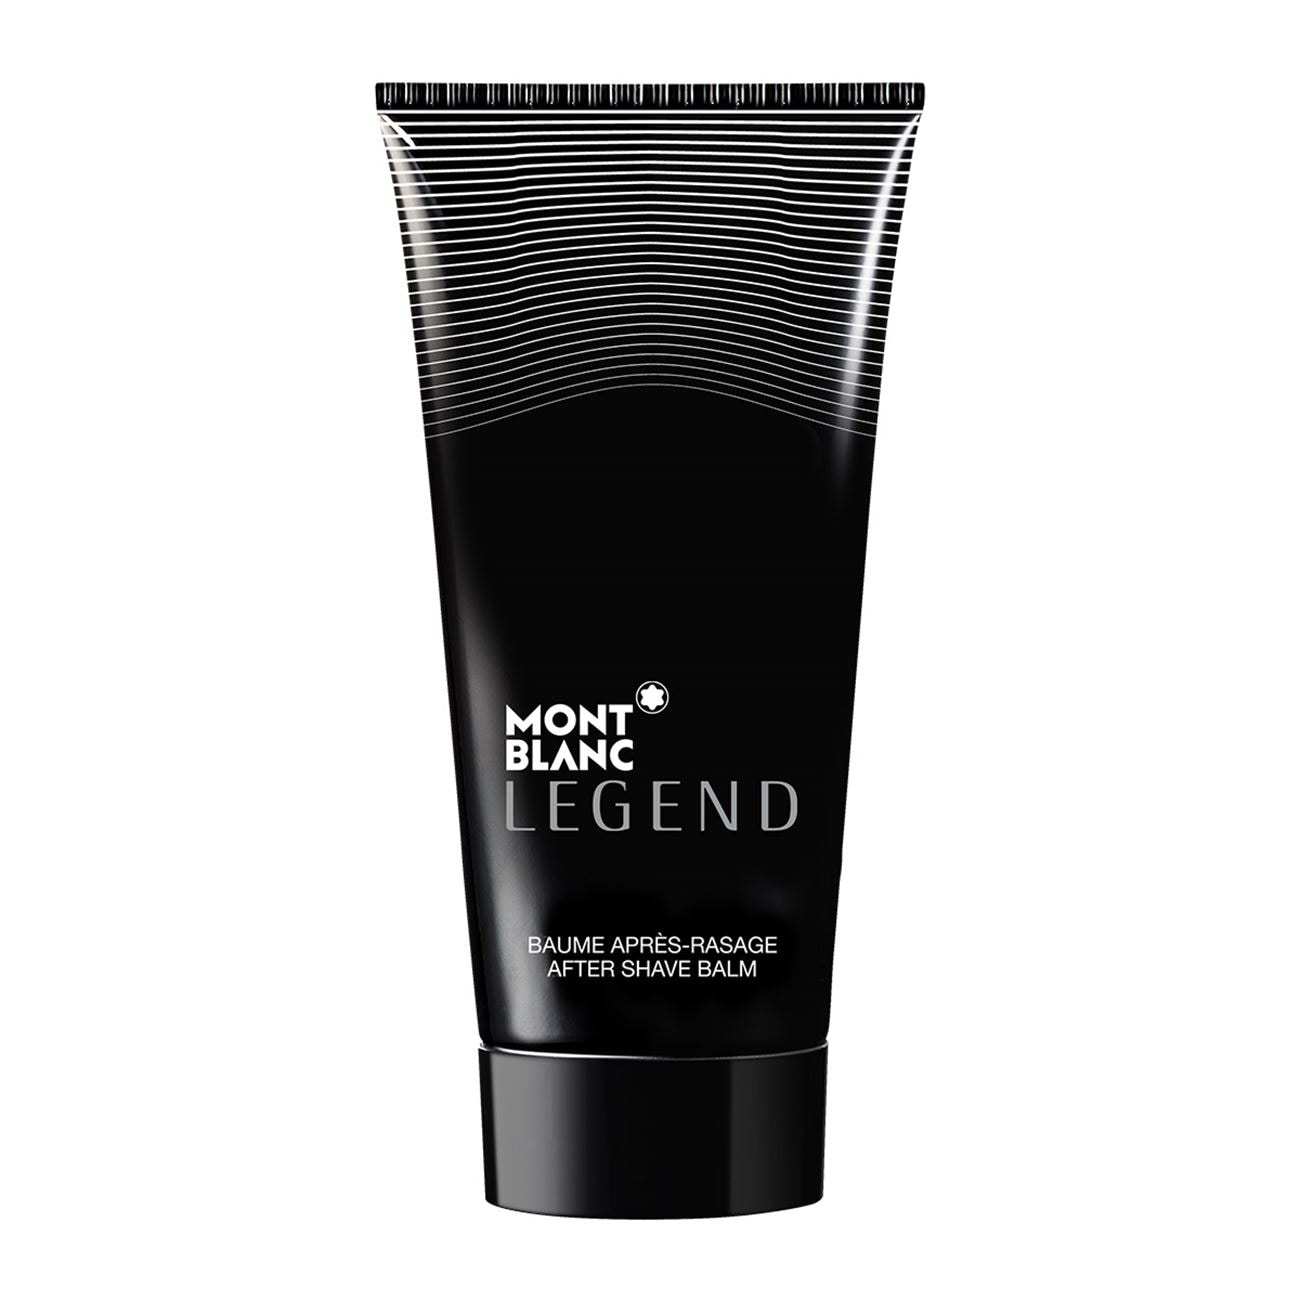 Montblanc Legend After Shave Balm